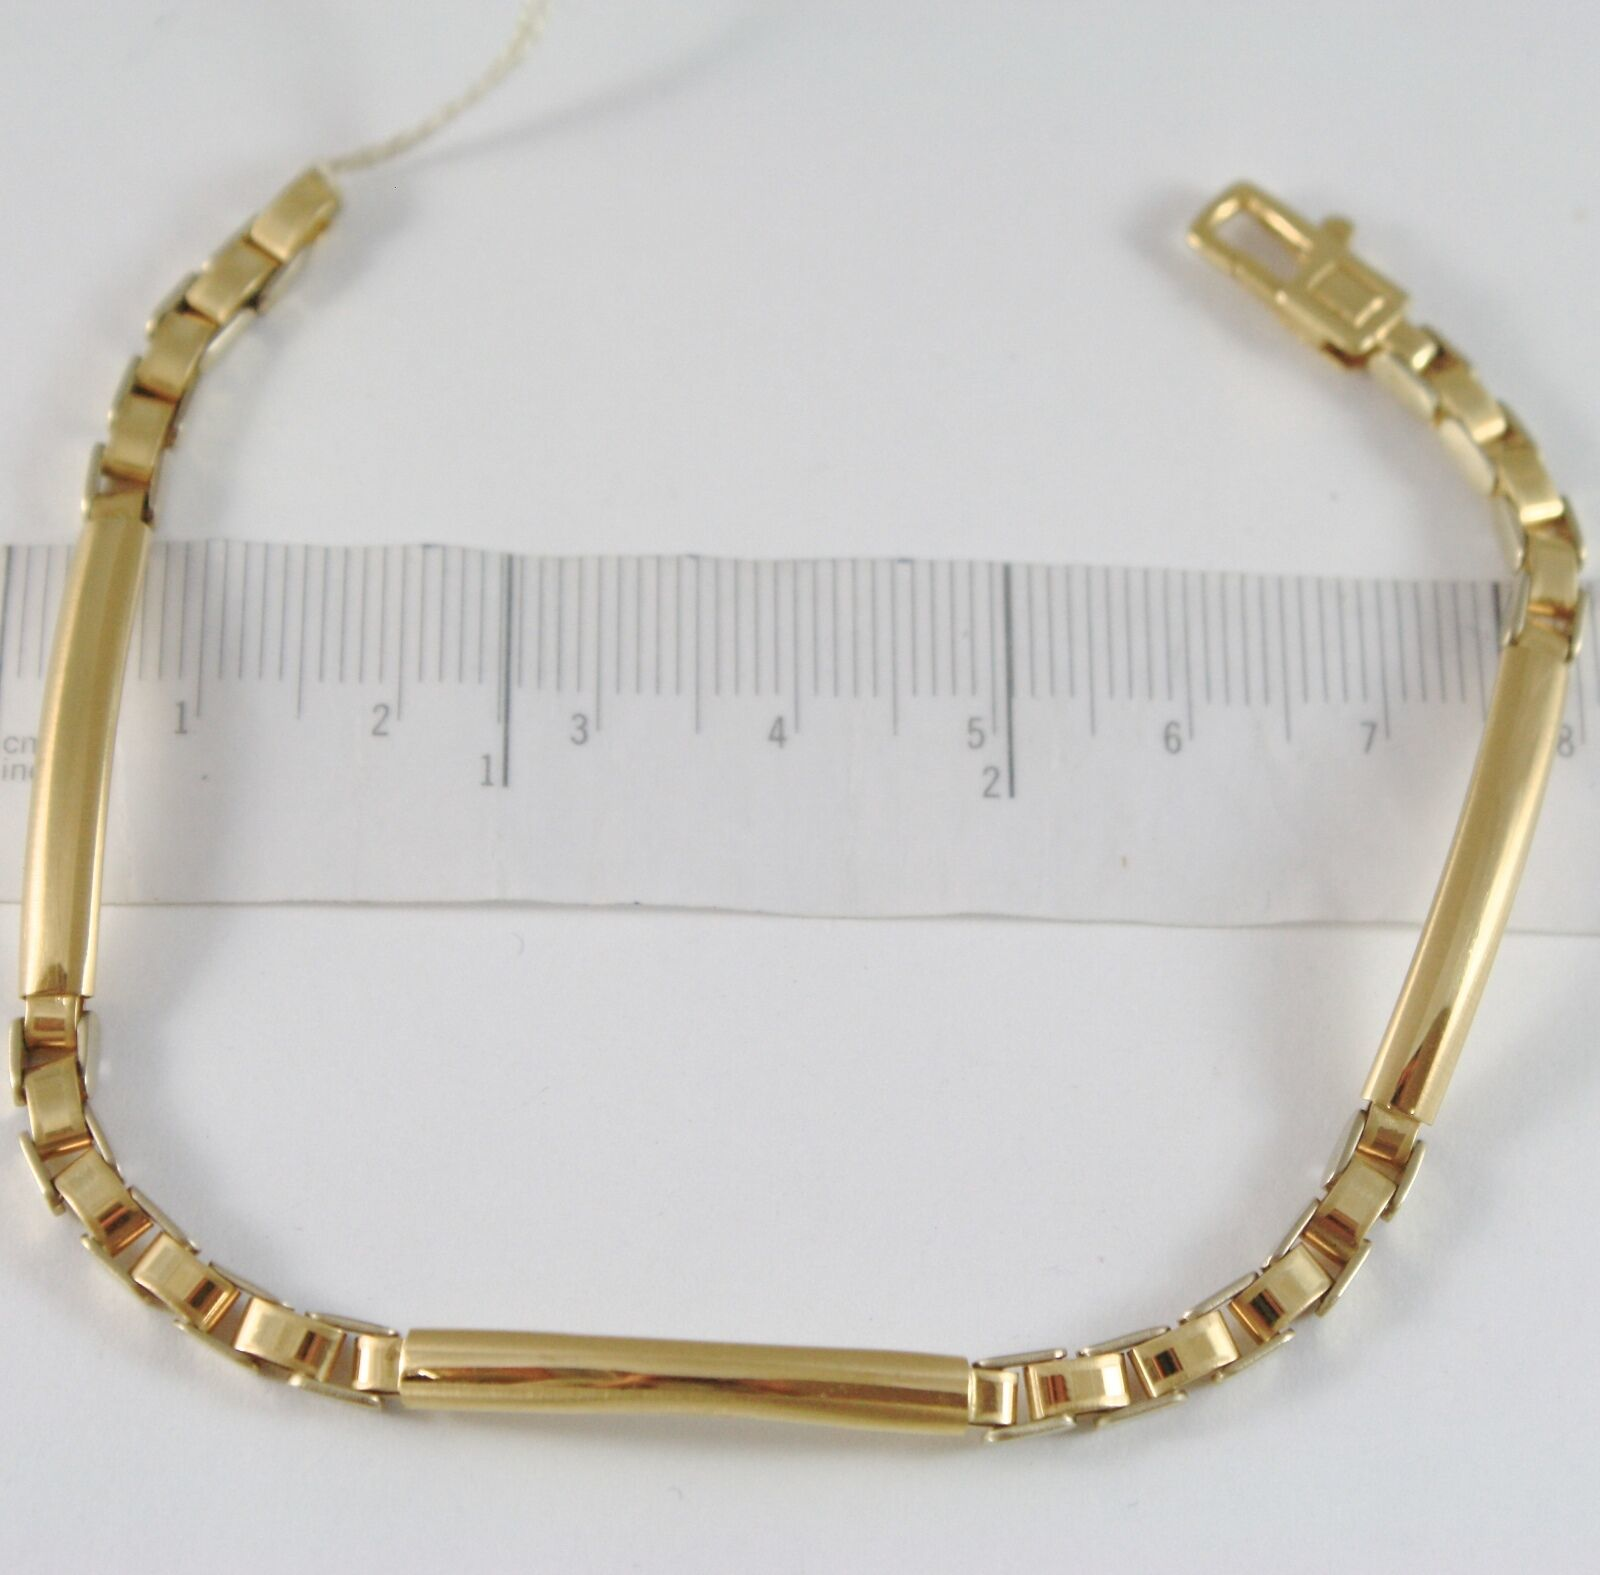 Bracelet Yellow Gold 750 18K, Three Plates Incision and Crawler, Long 20.5 CM